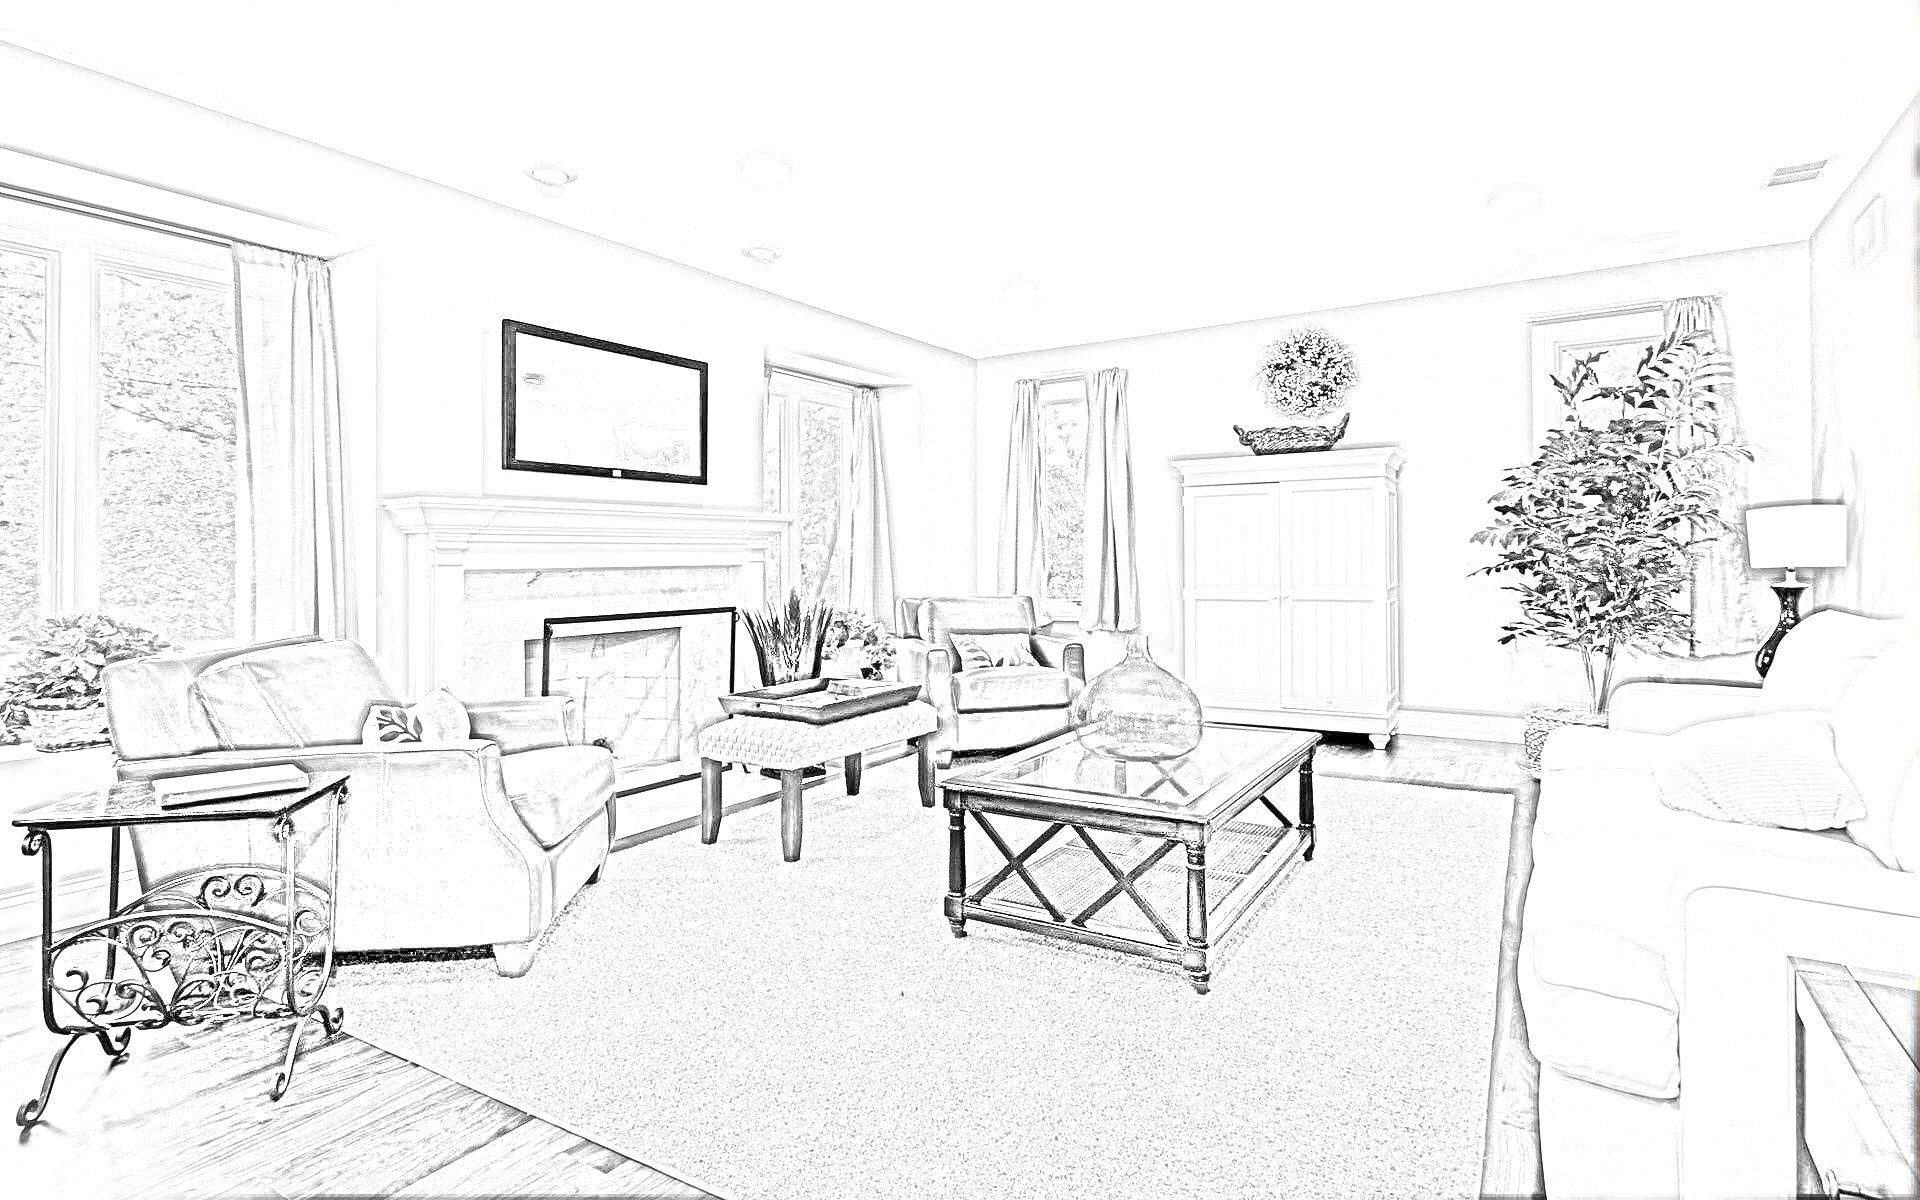 How to do interior design sketches bqtmpph stunning for Interior design sketches